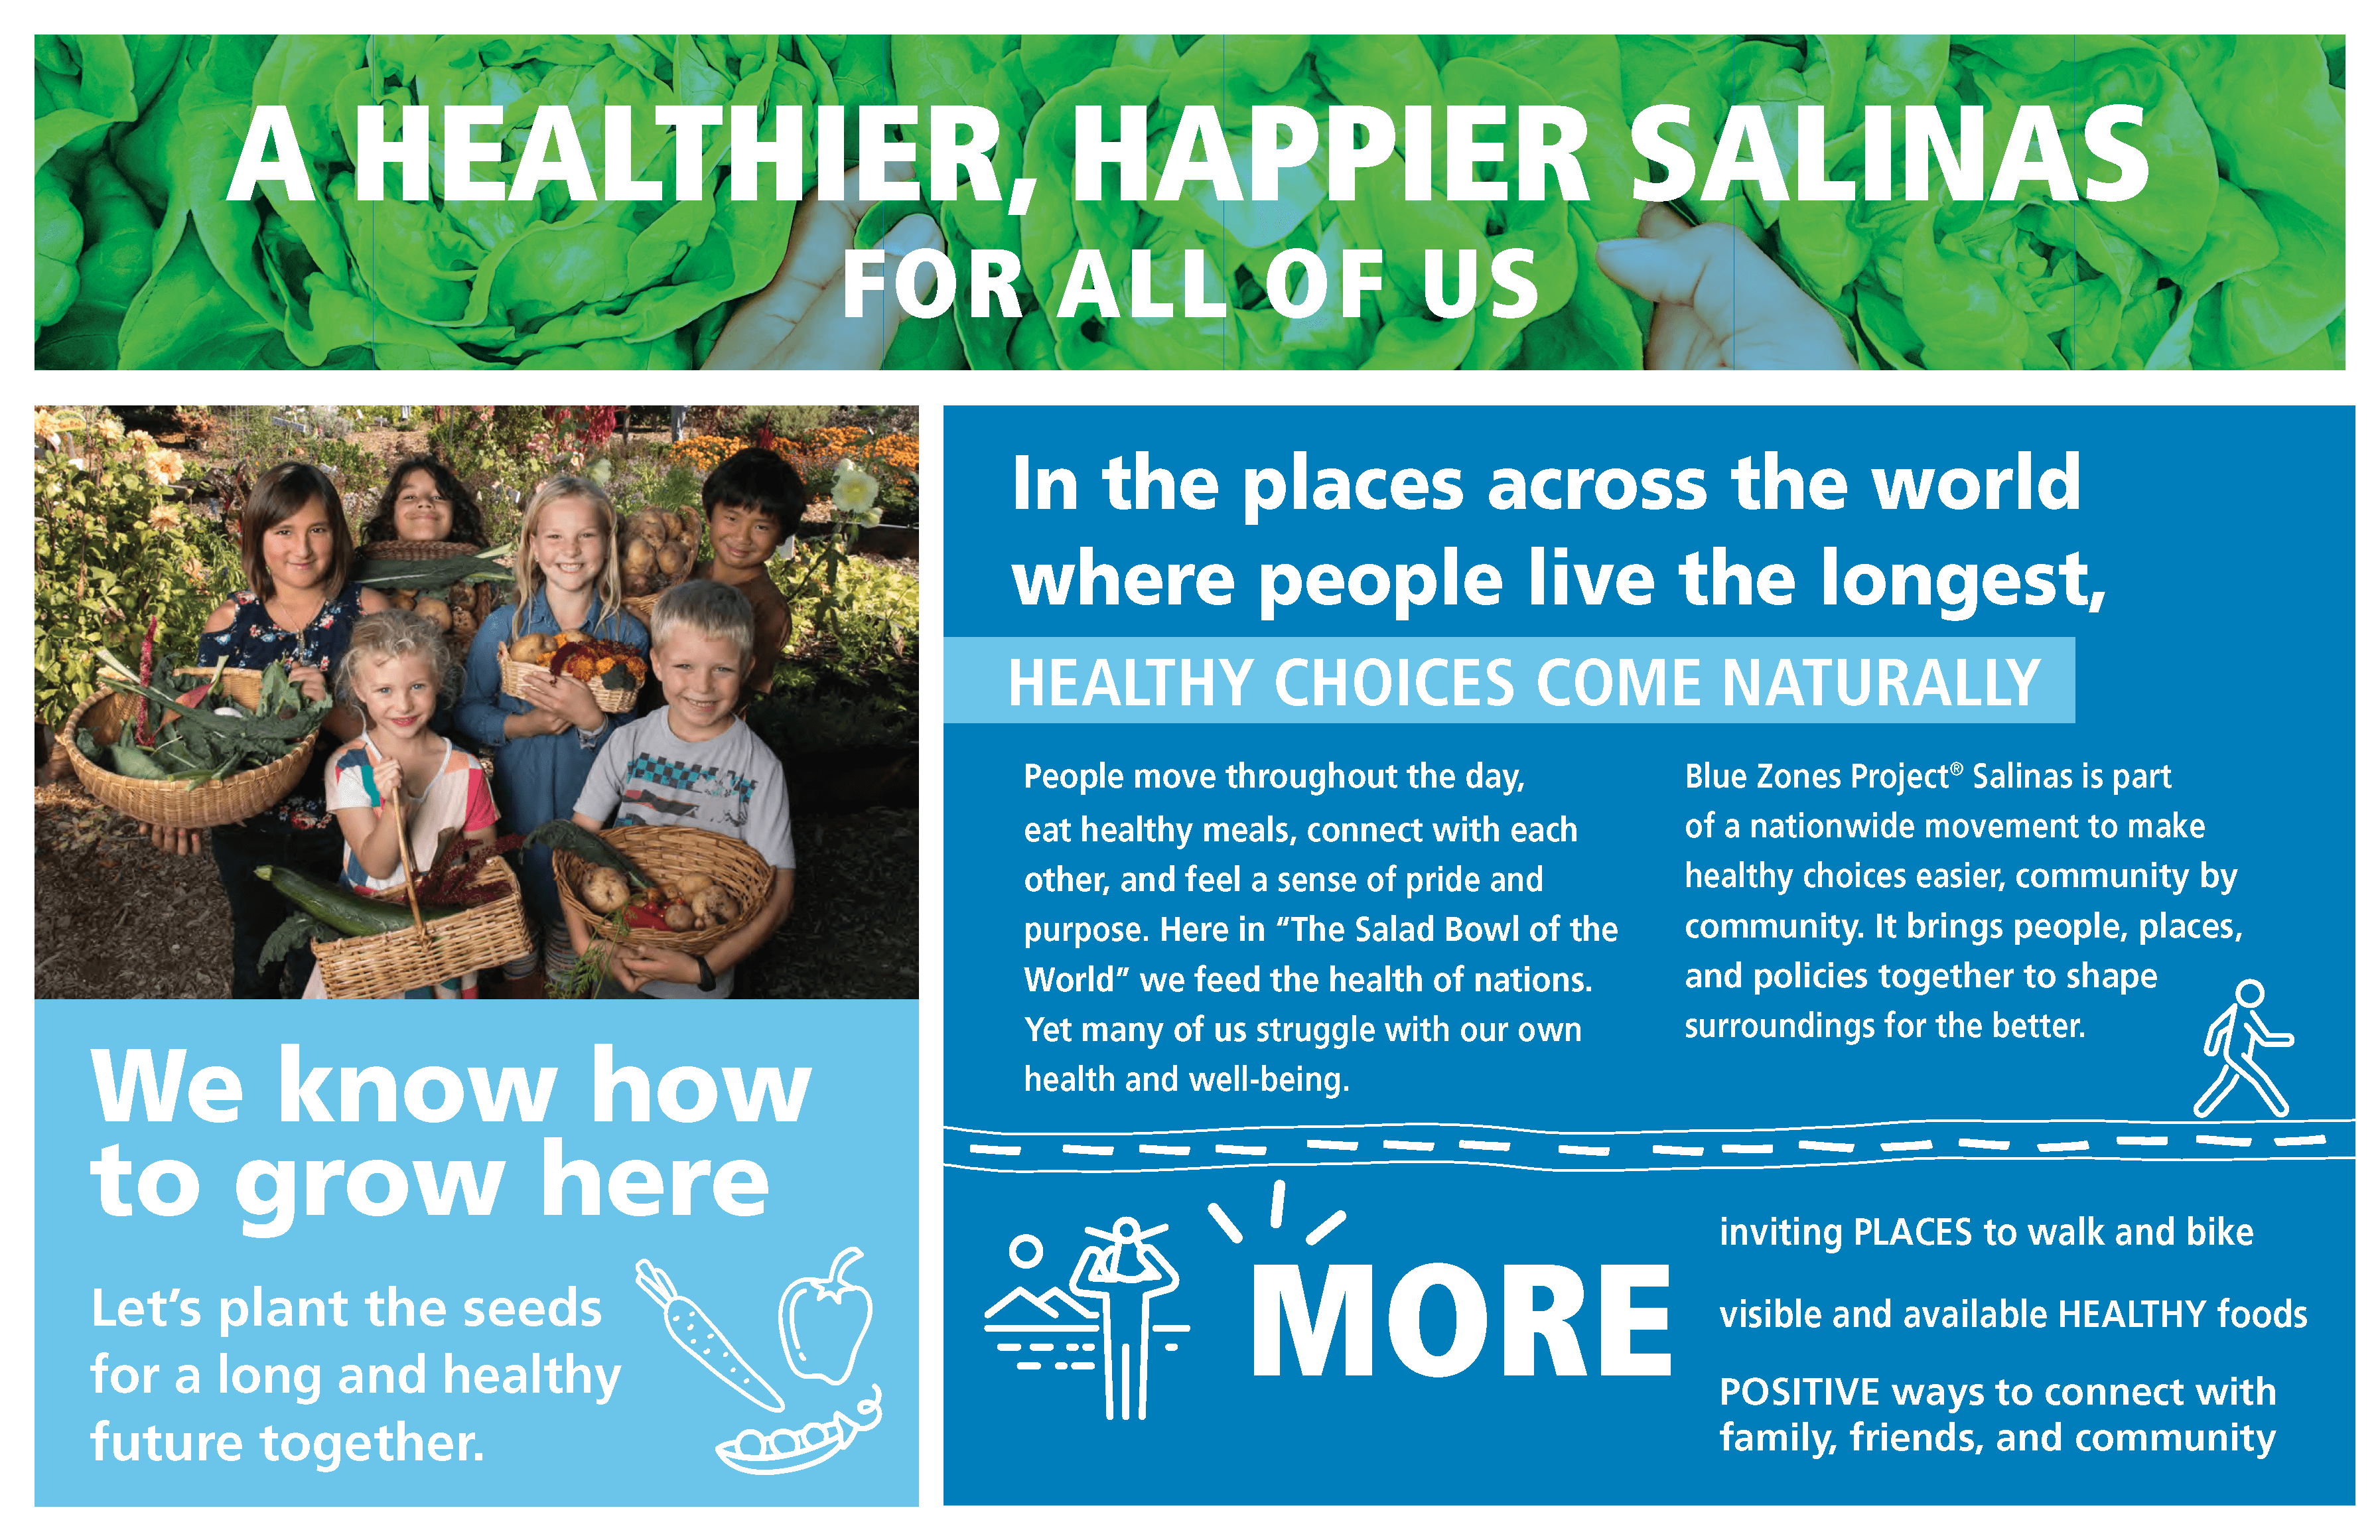 A Healthier, Happier Salinas for All of Us. Healthy choices come naturally.